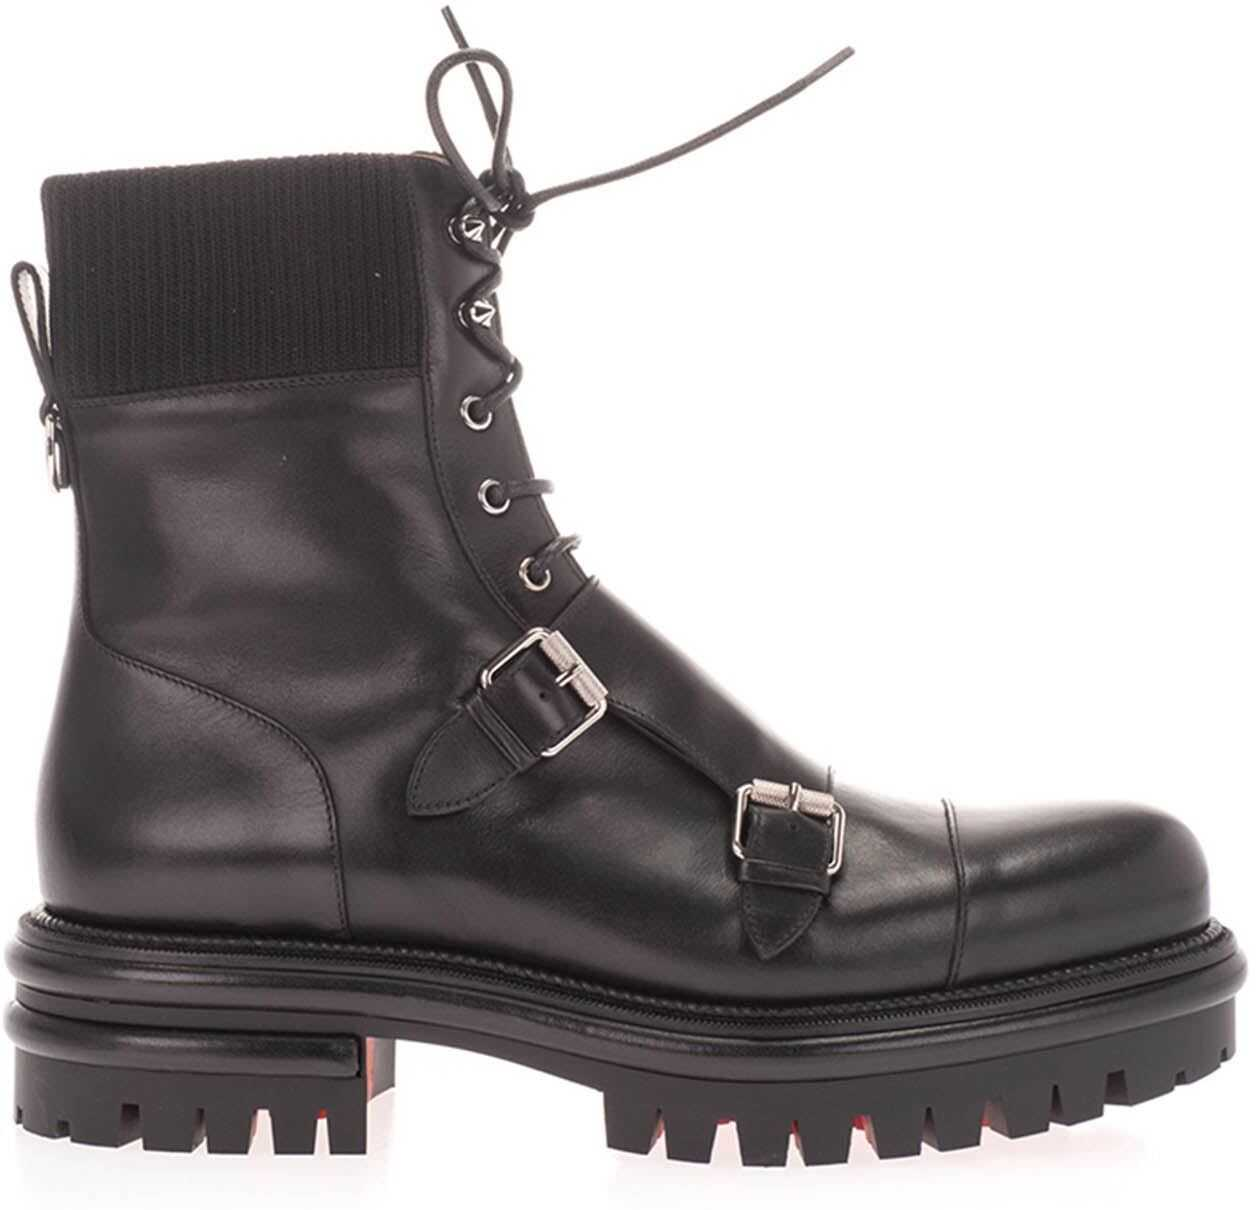 Yetito Combat Boots In Black